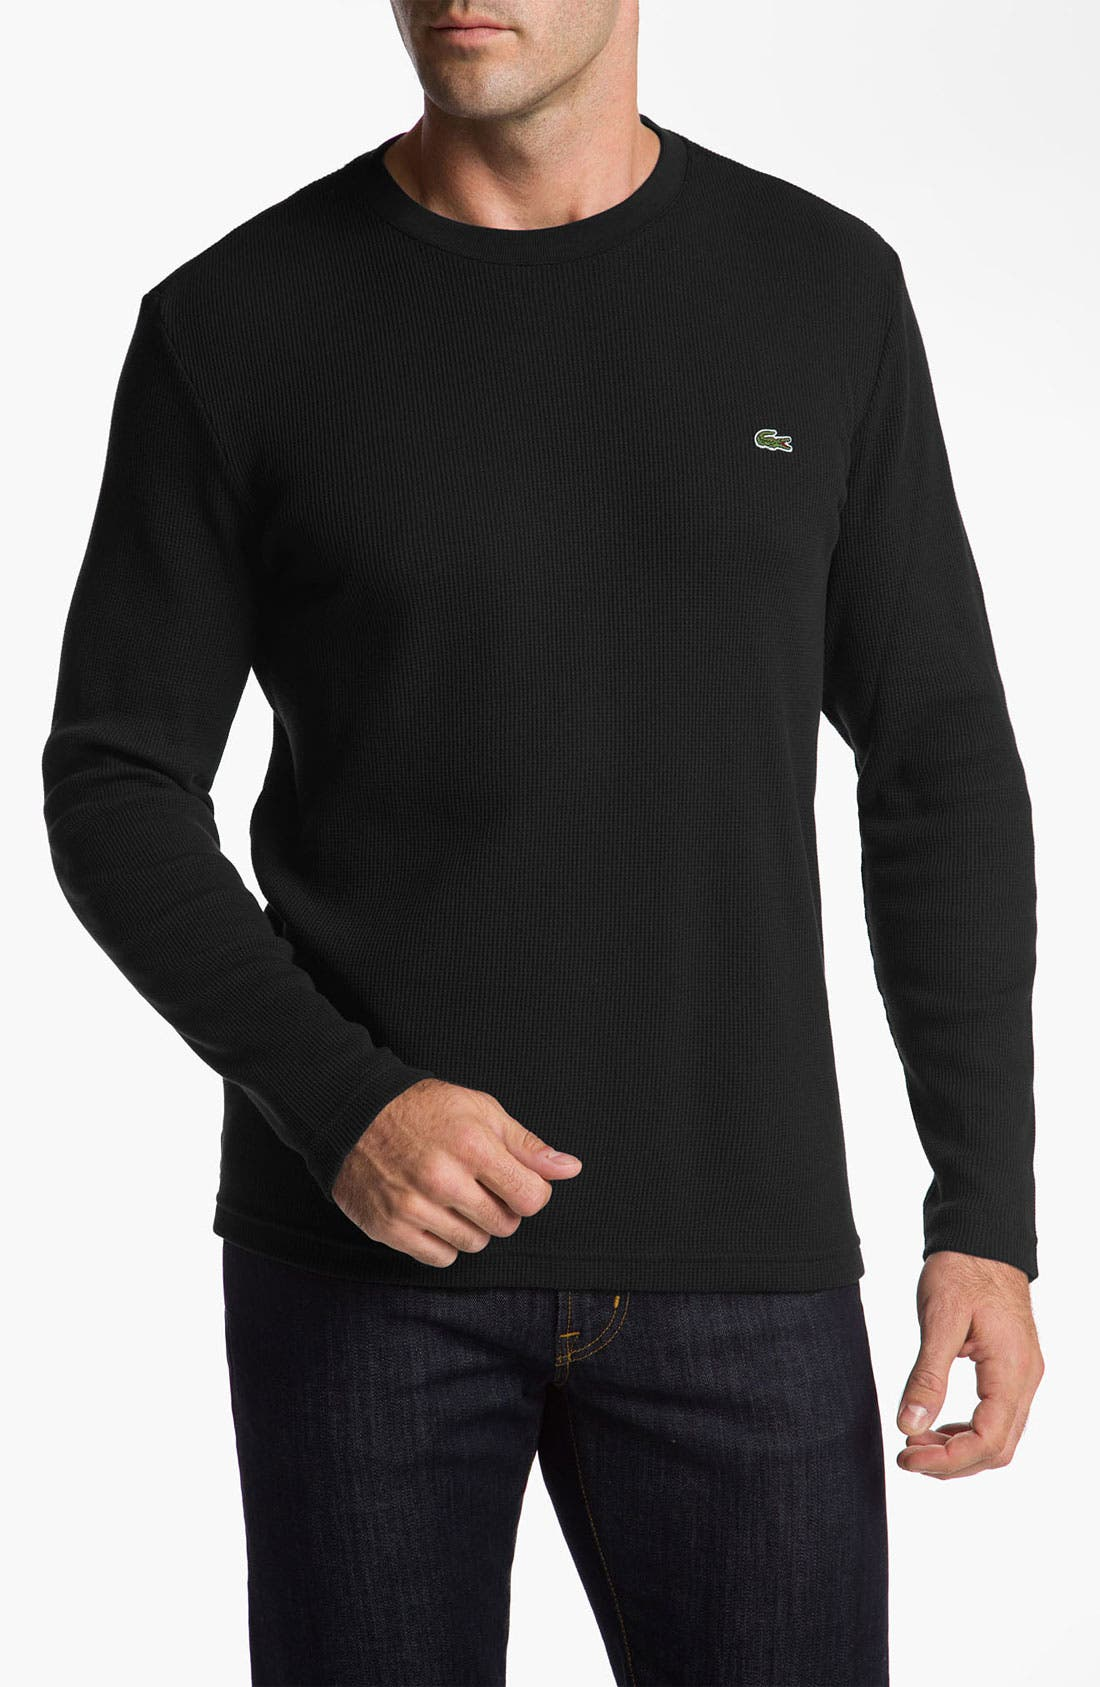 Main Image - Lacoste Crewneck Thermal Top